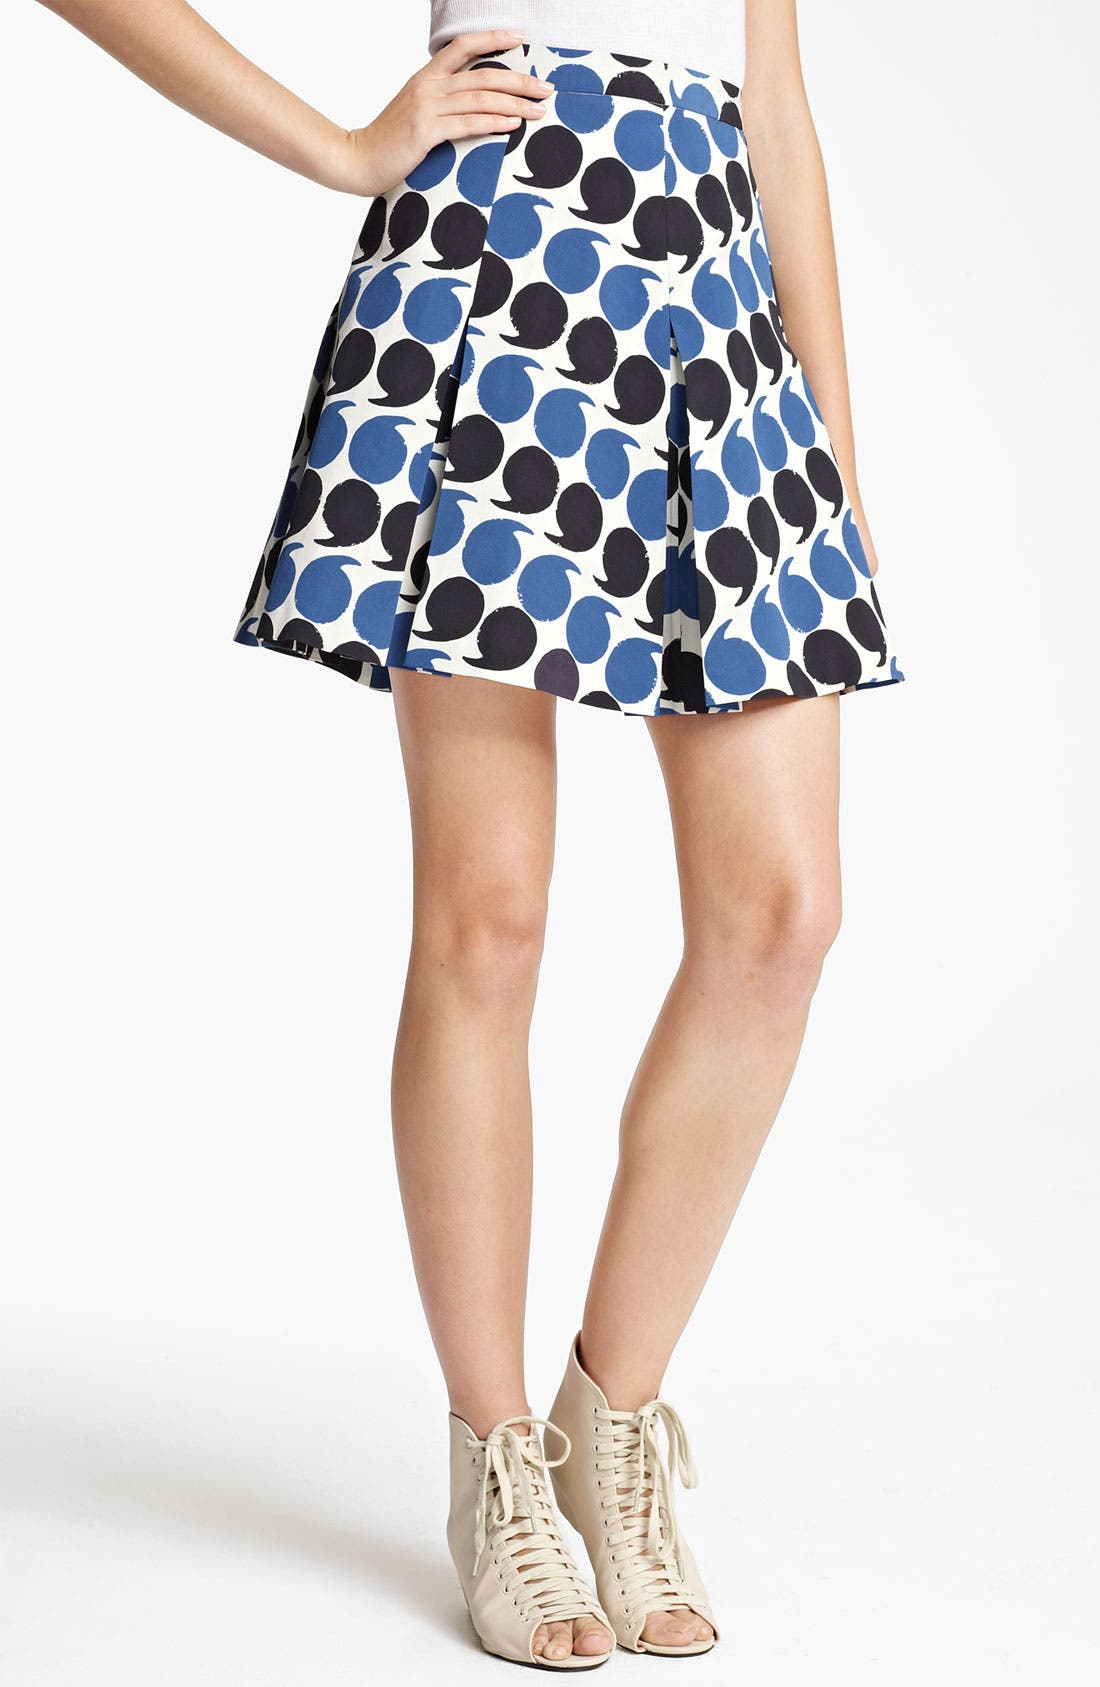 Alternate Image 1 Selected - Band of Outsiders Punctuation Print Skirt